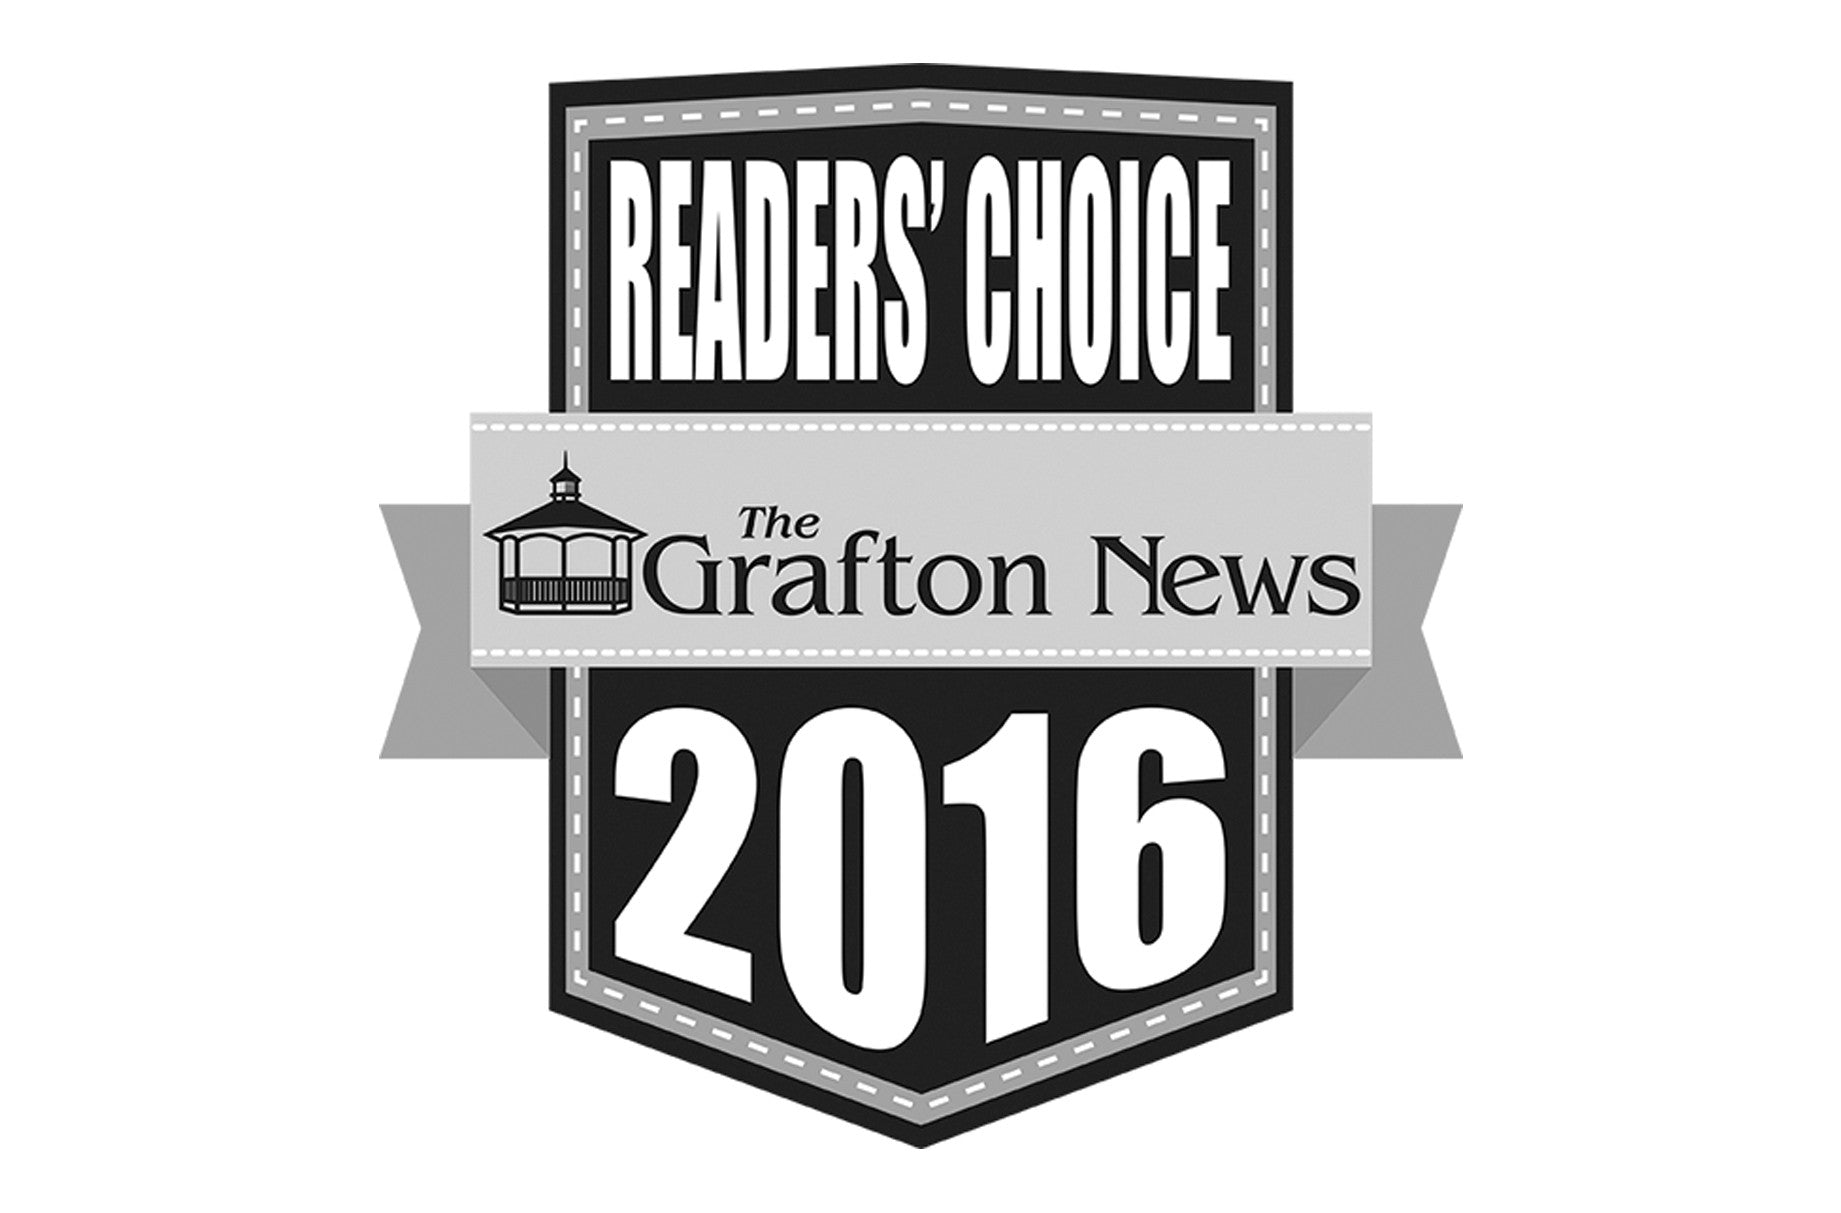 The Grafton News 2016 Readers' Choice Awards